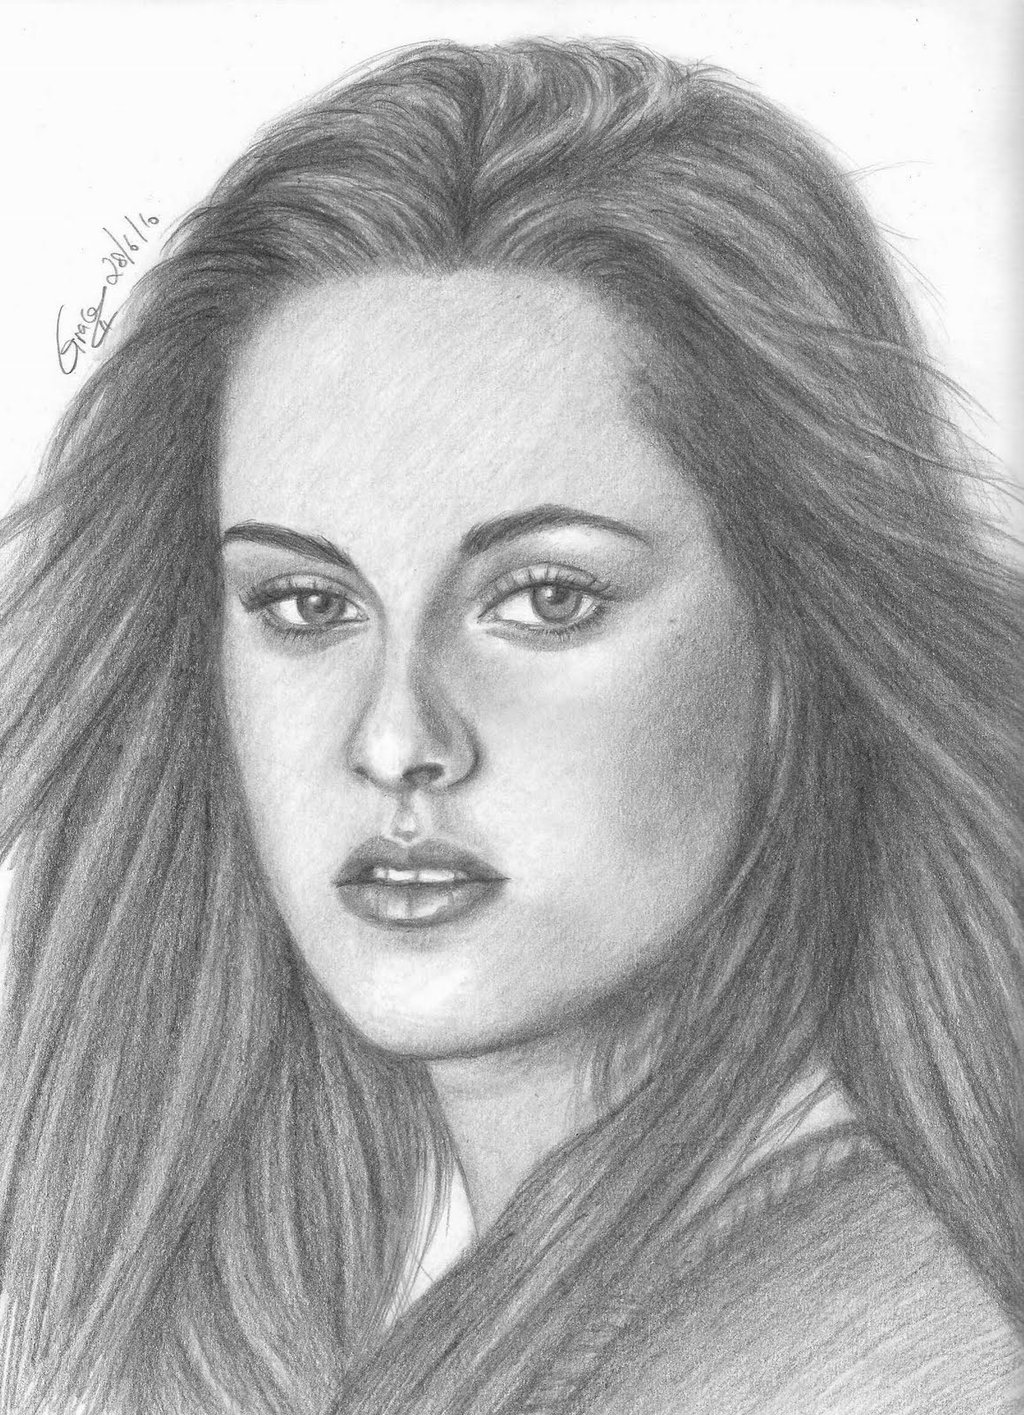 1024x1415 pencil drawings pencil drawings from photographs photo to pencil sketch online